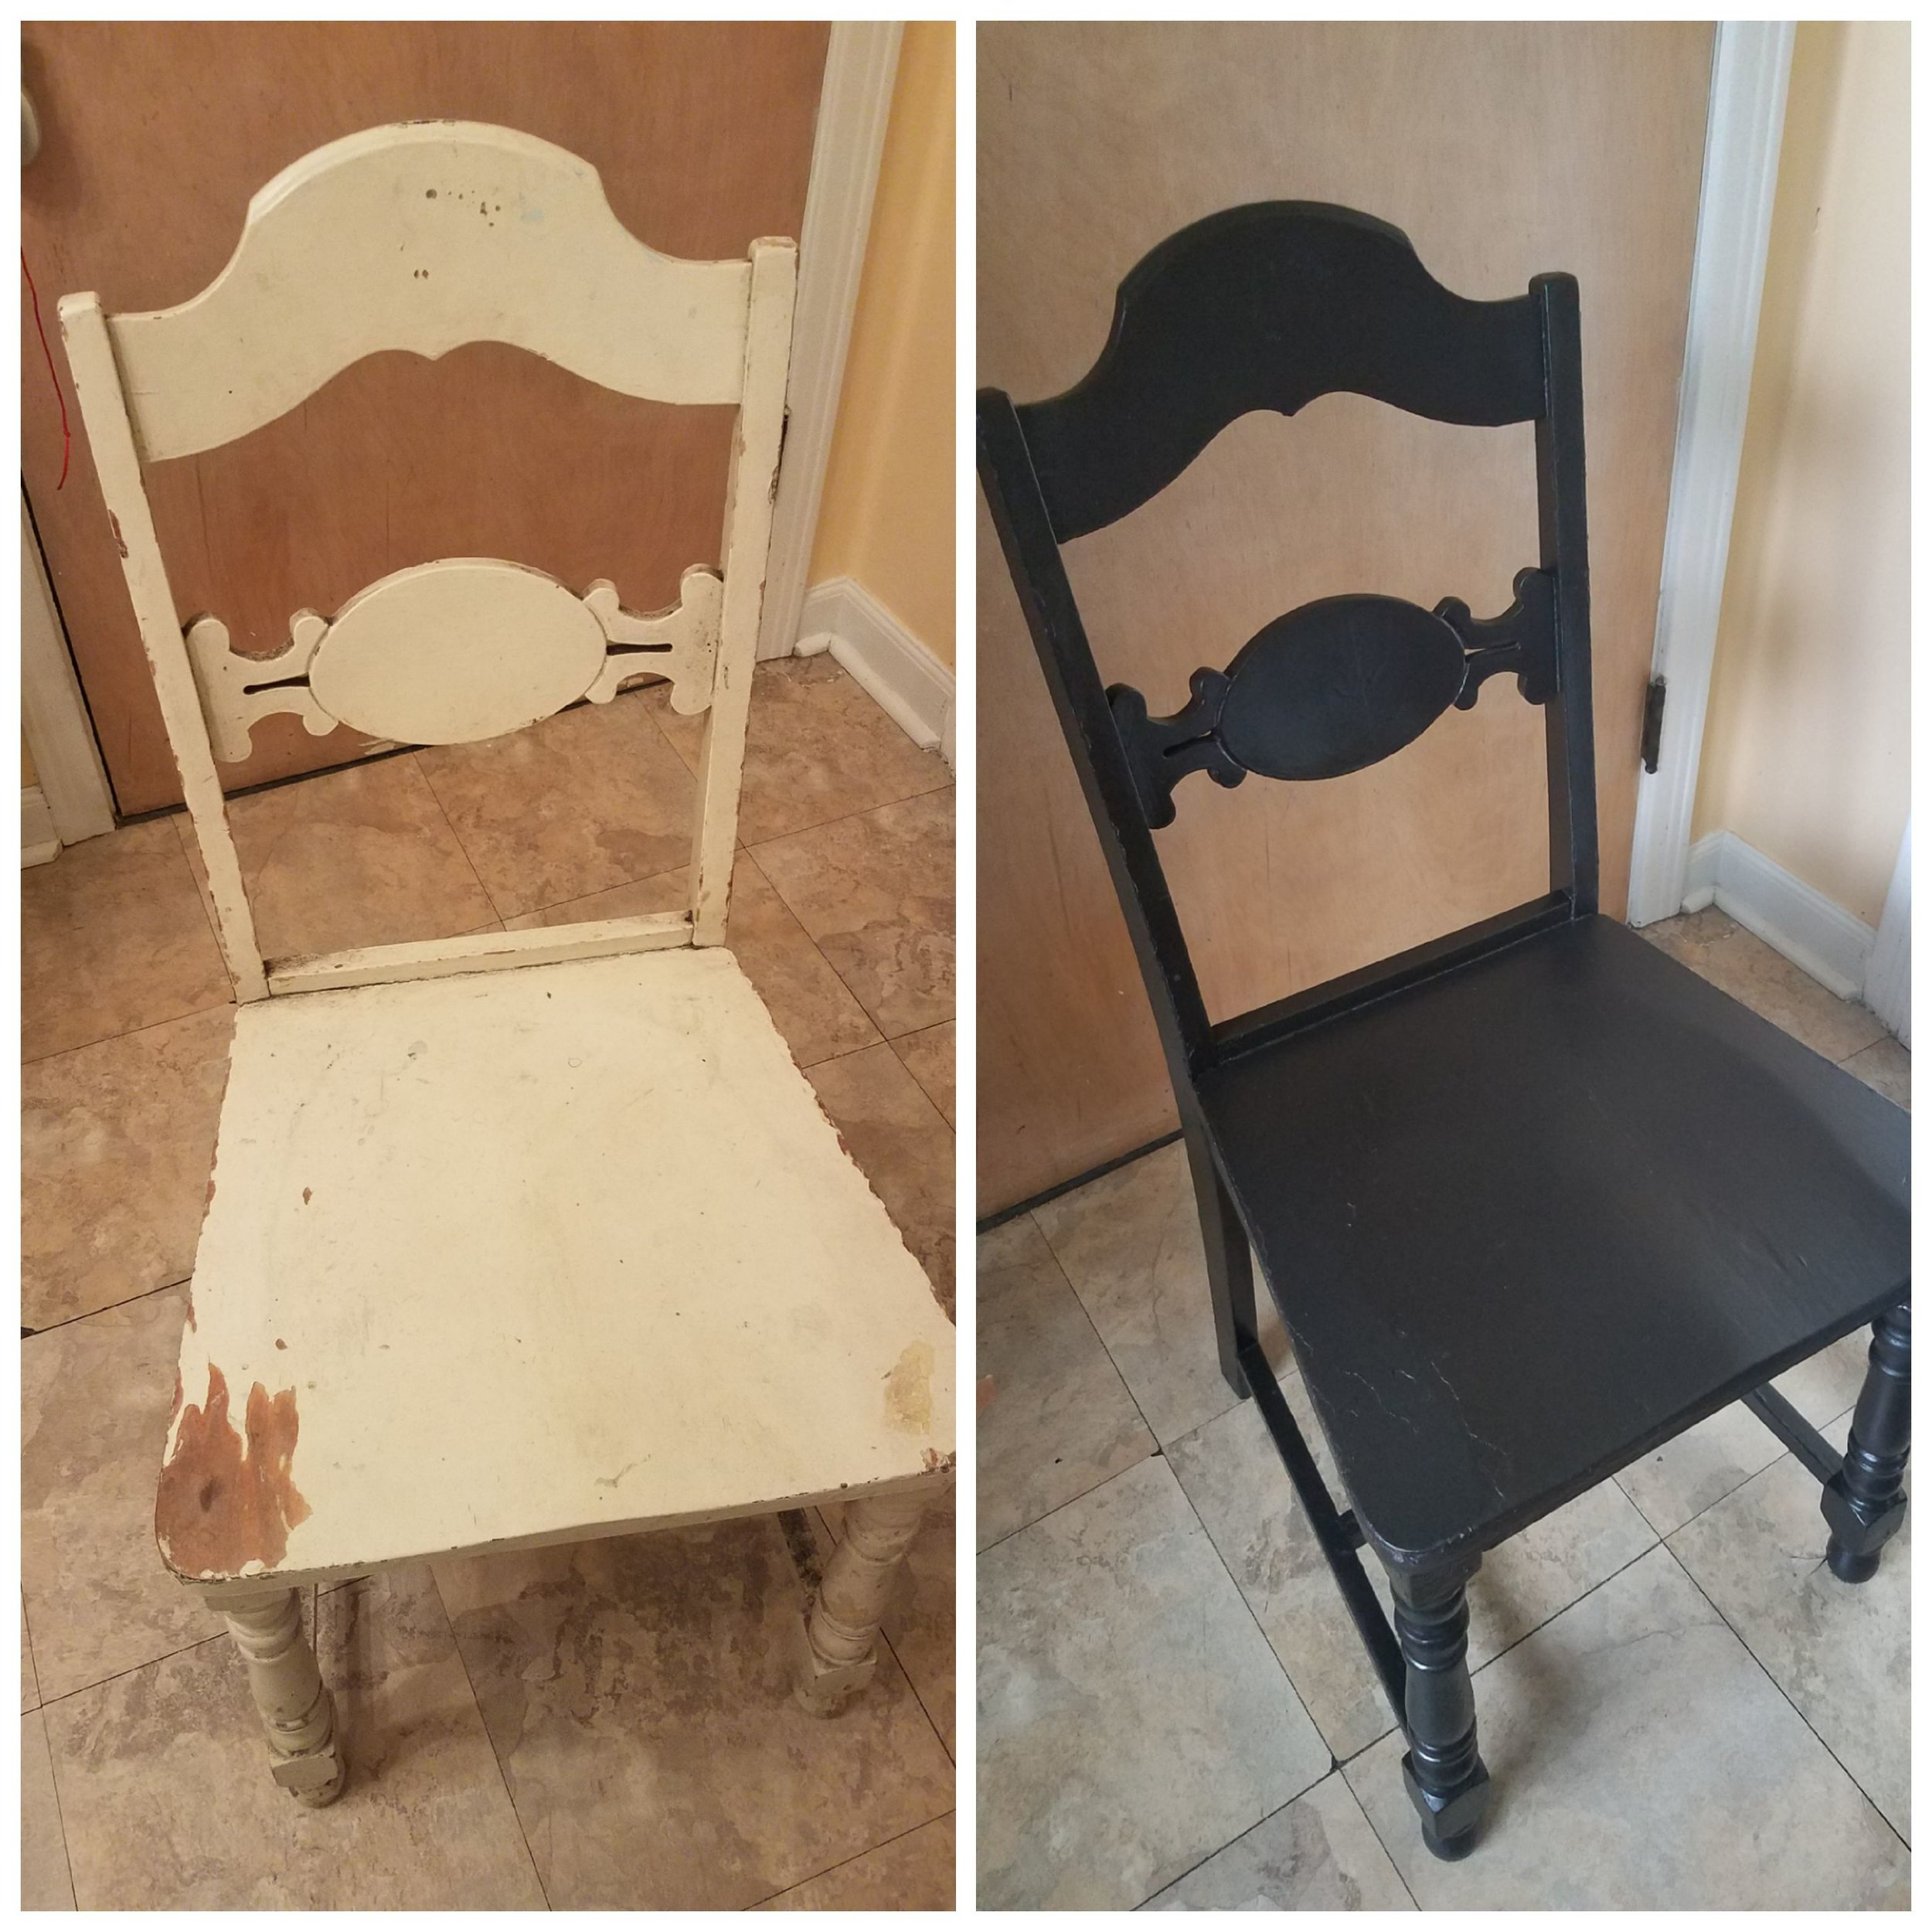 Chaire before and after.jpg